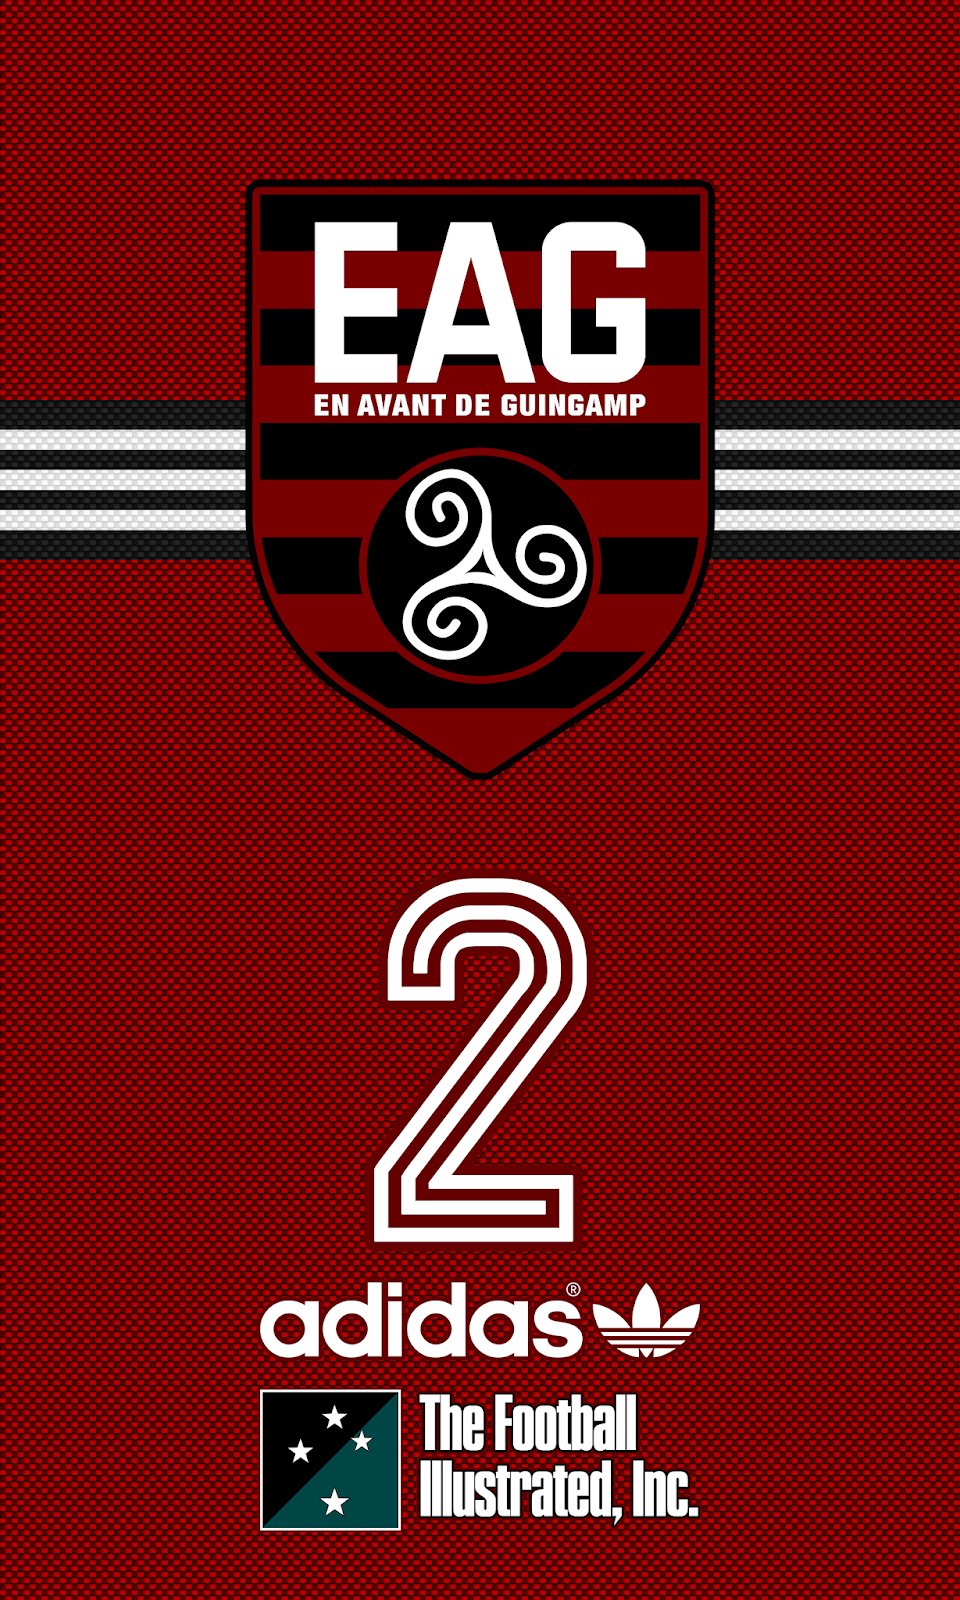 Wallpapers En Avant de Guingamp